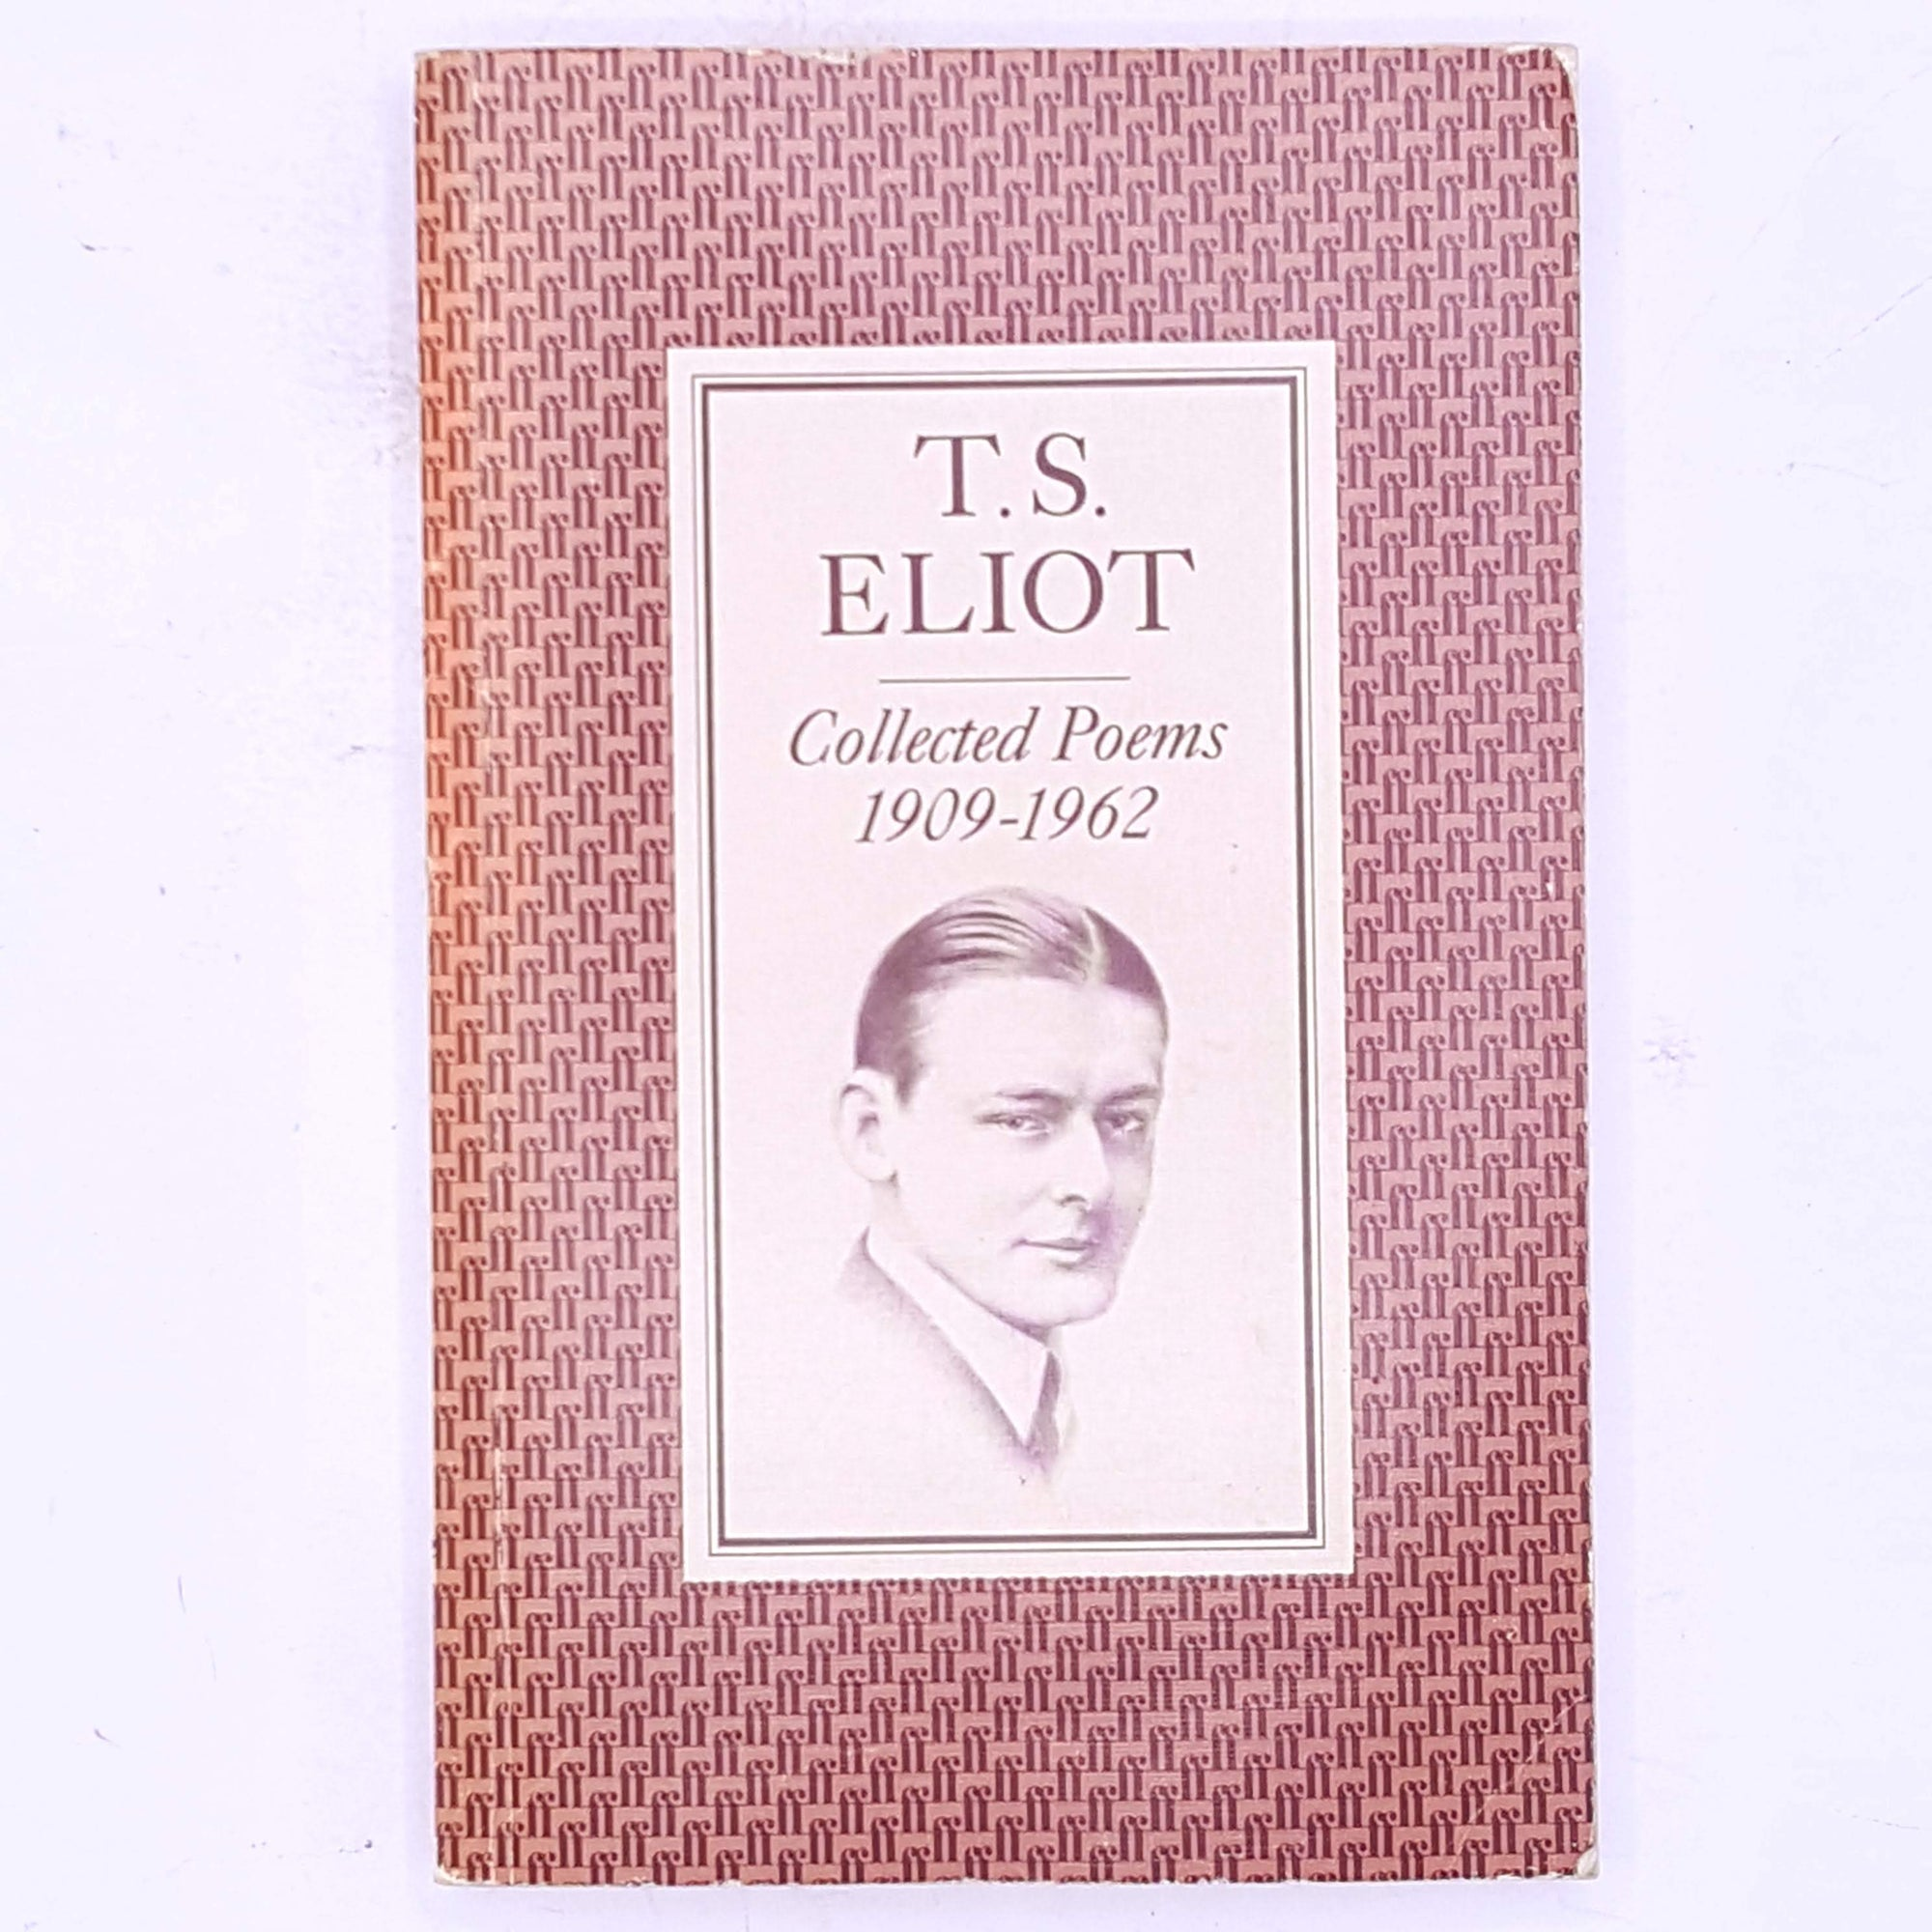 books-old-thrift-t.s.-eliot-classic-patterned-decorative-antique-collected-poems-1909-1962-faber-and-faber-poems-poetry-poet-writer-british-country-house-library-vintage-